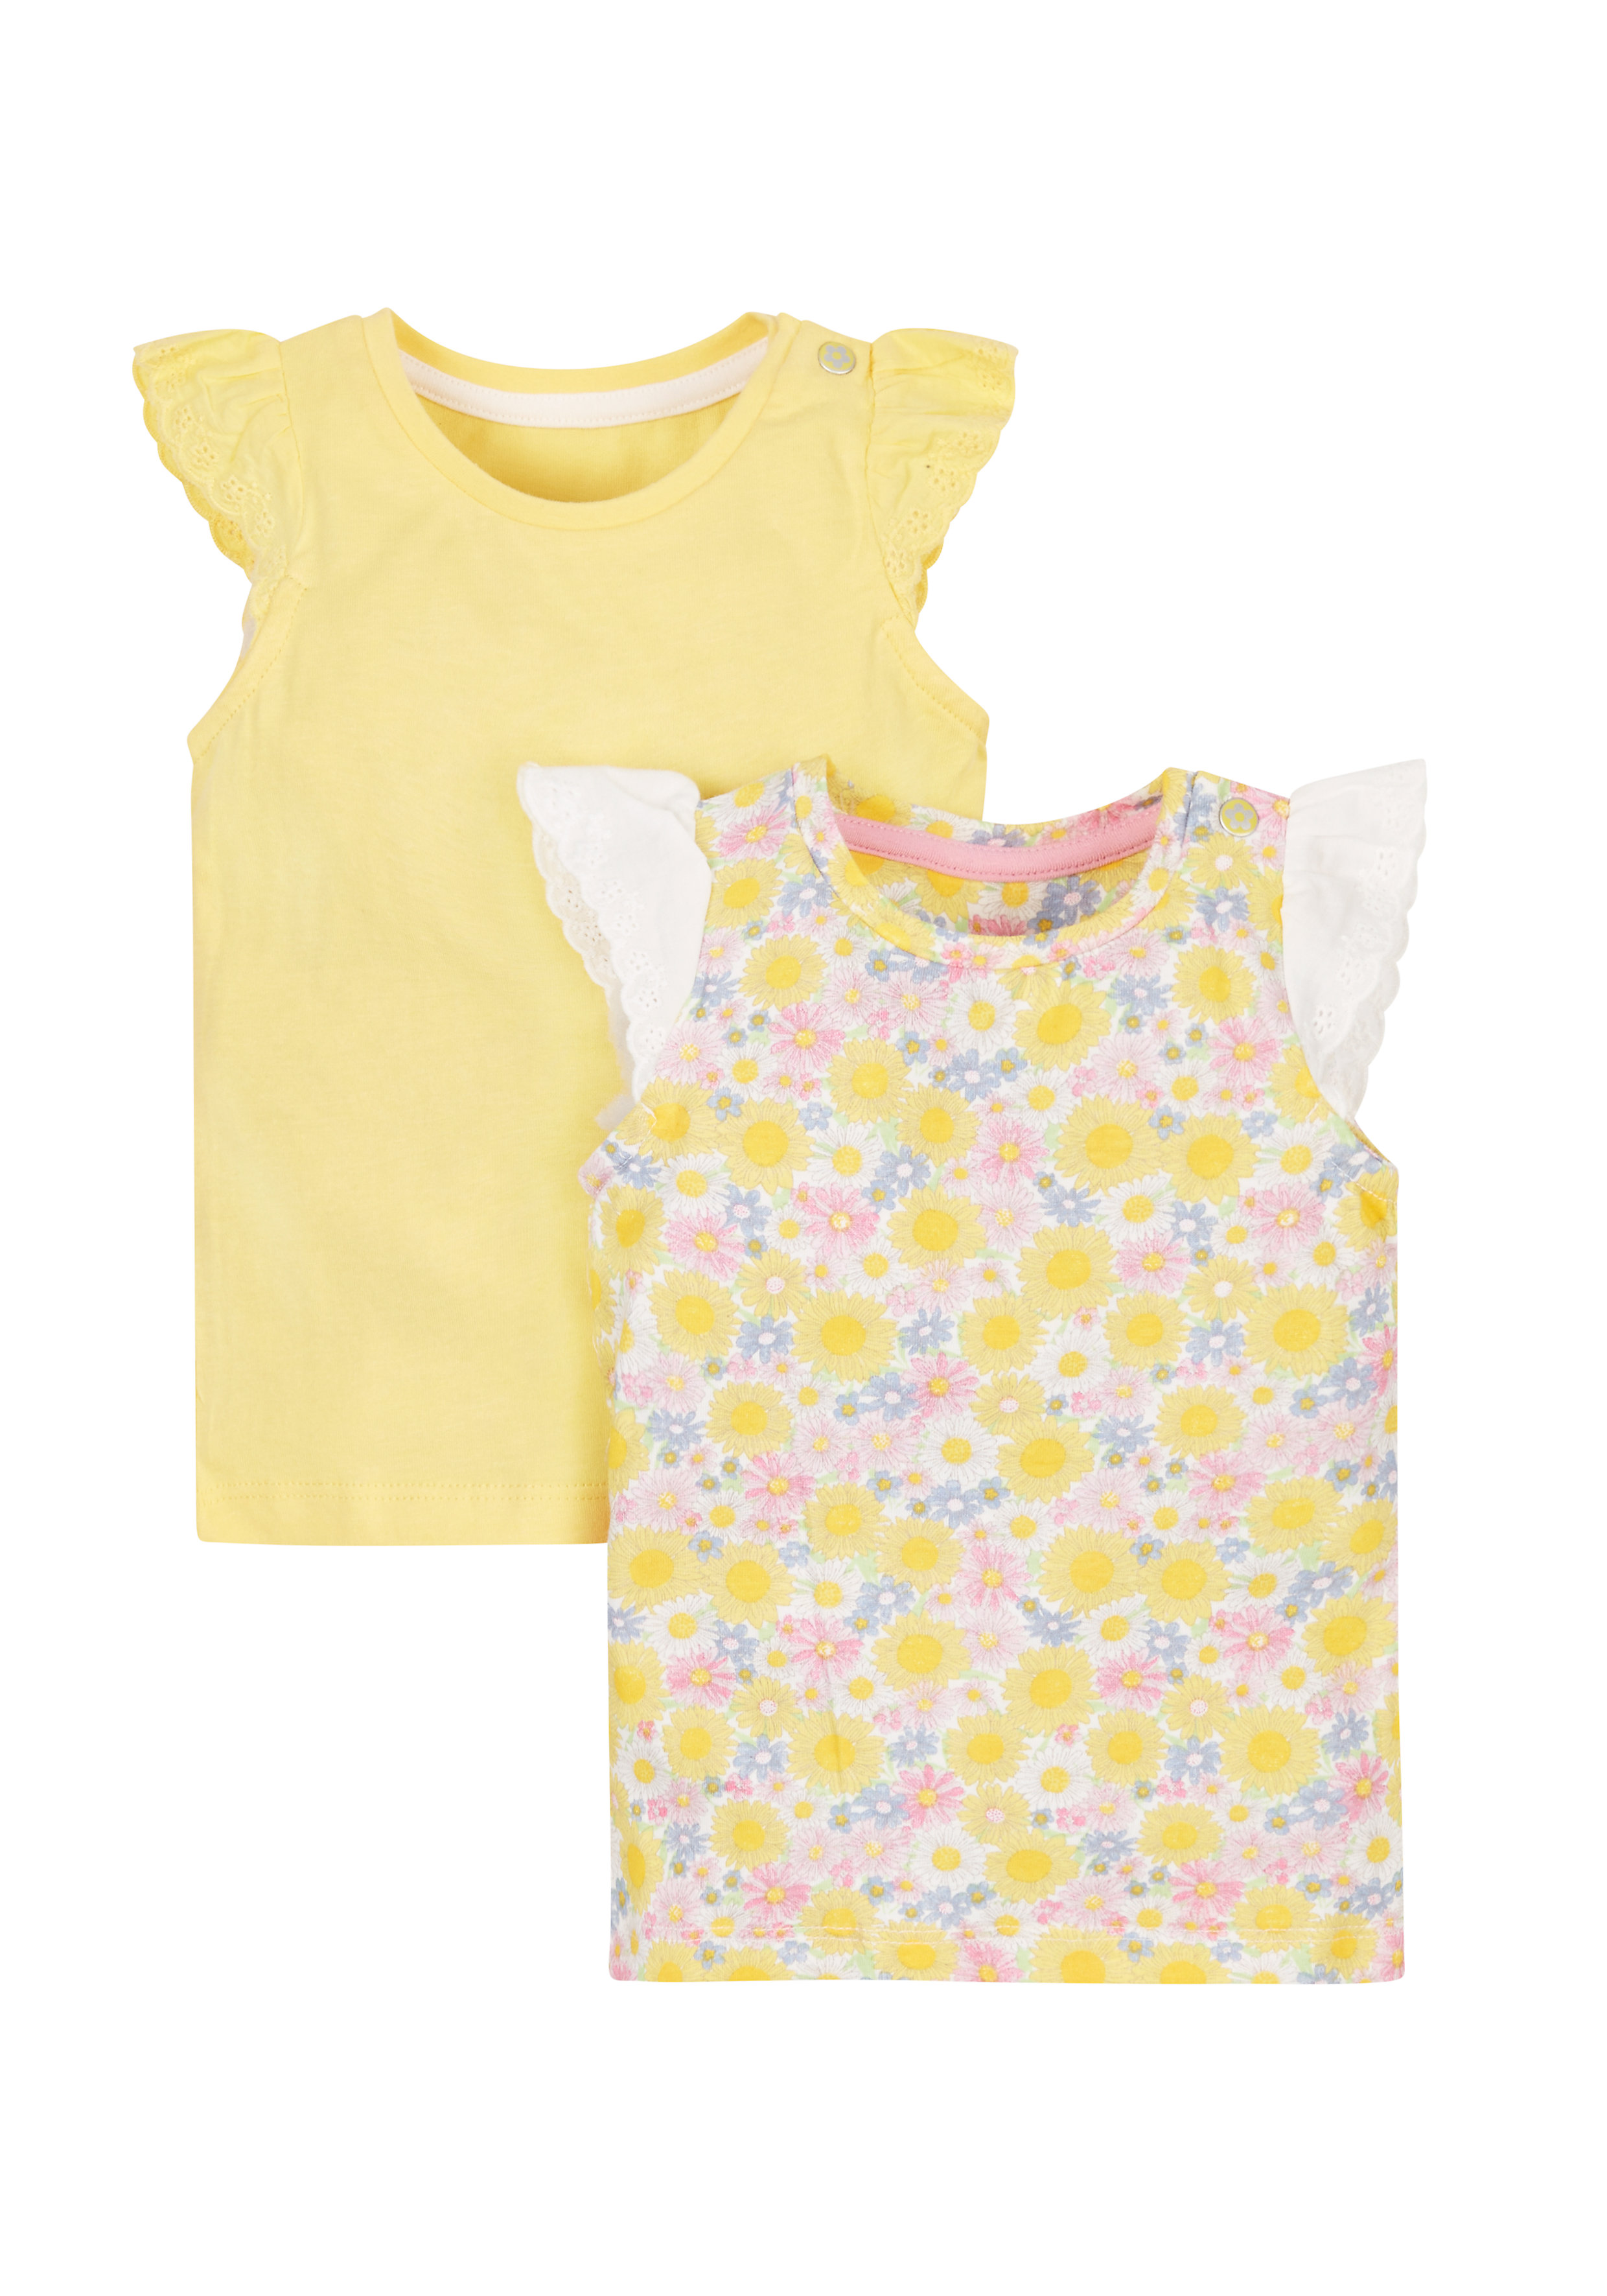 Mothercare   Girls Floral Vests - Pack Of 2 - Yellow